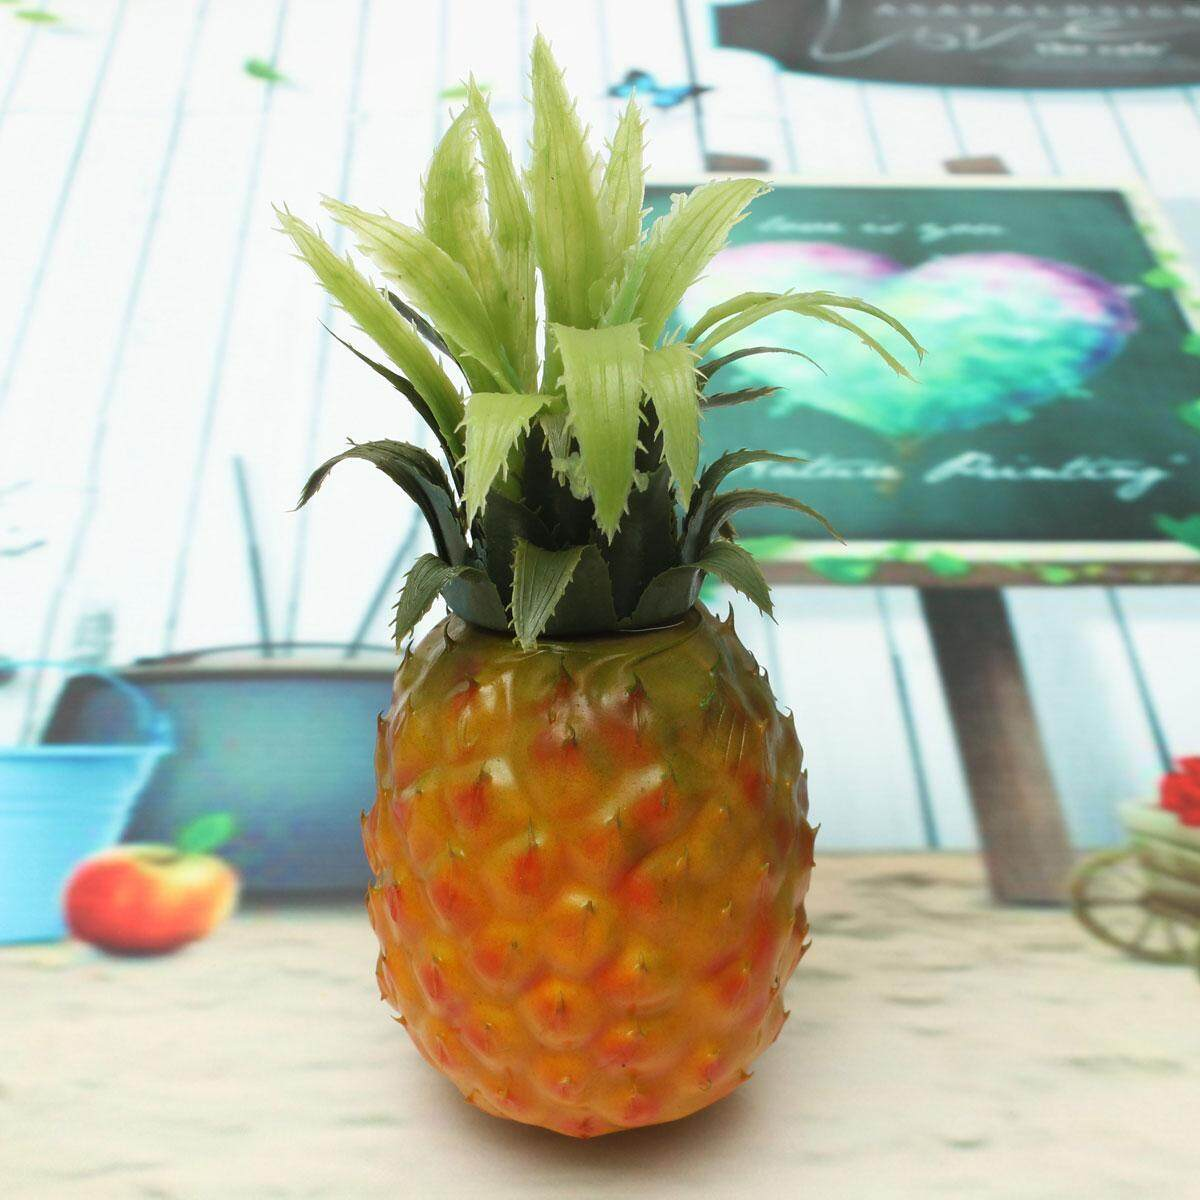 Artificial Pineapple Plastic Fruit Fake Food Home Kitchen Decor